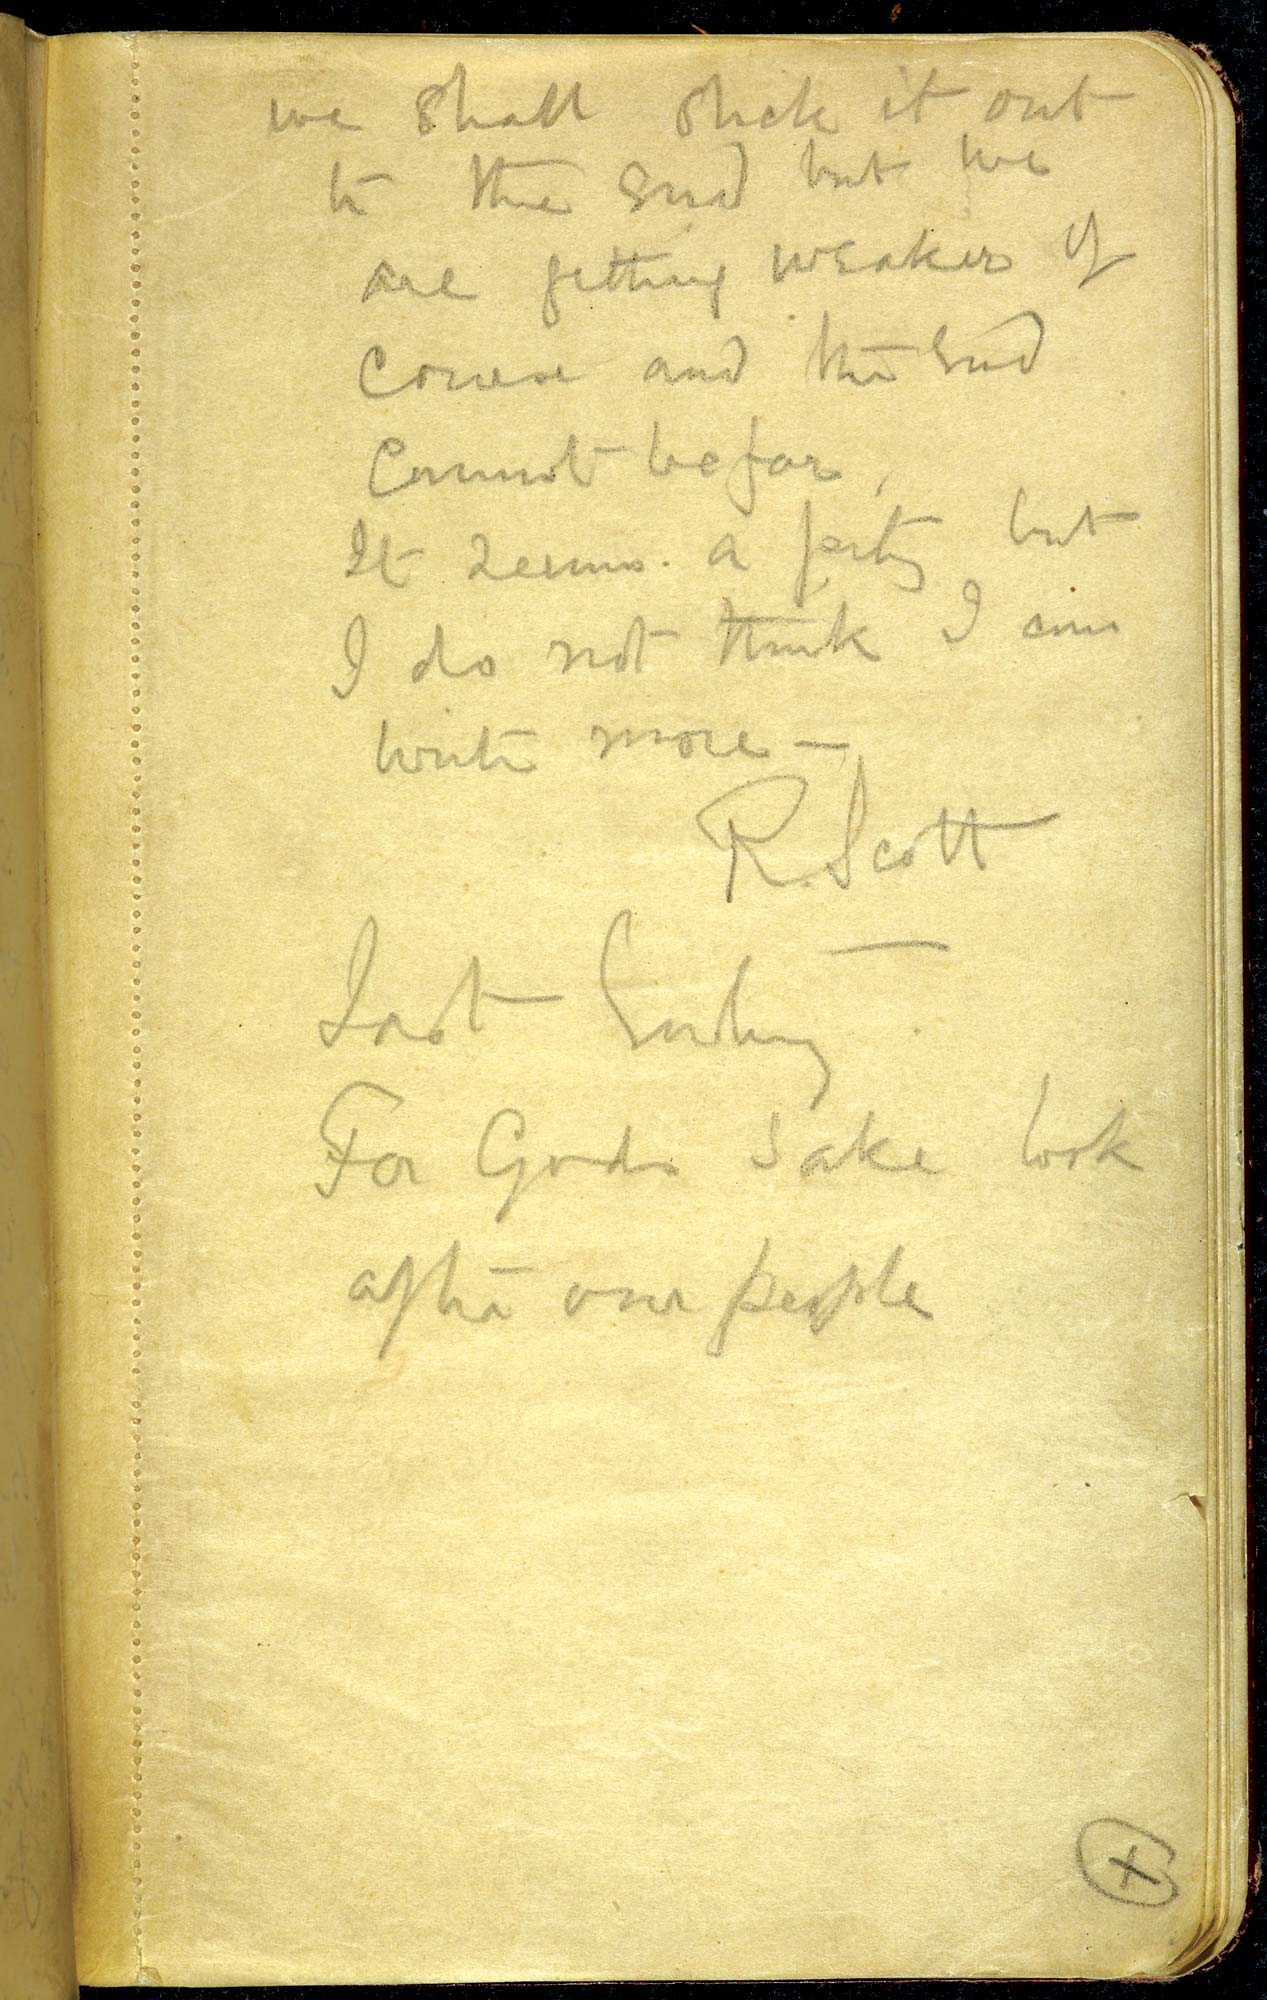 The last entry in Captain Scott's Diary f.39